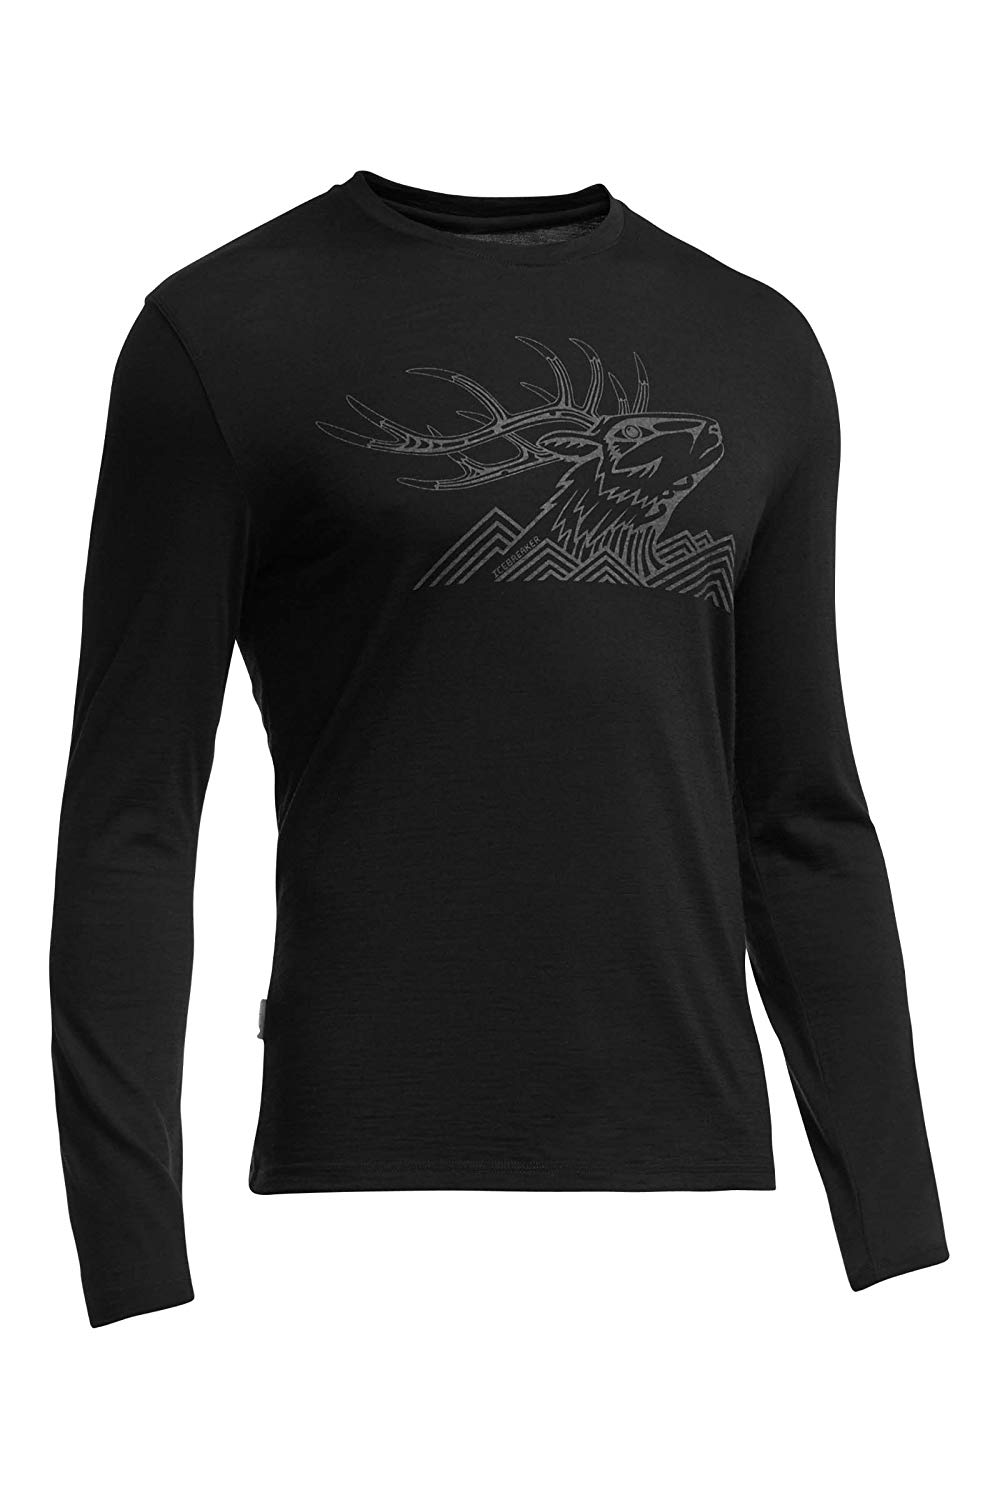 Icebreaker Tech Lite LS Crew Antler Mtn Top - Men's